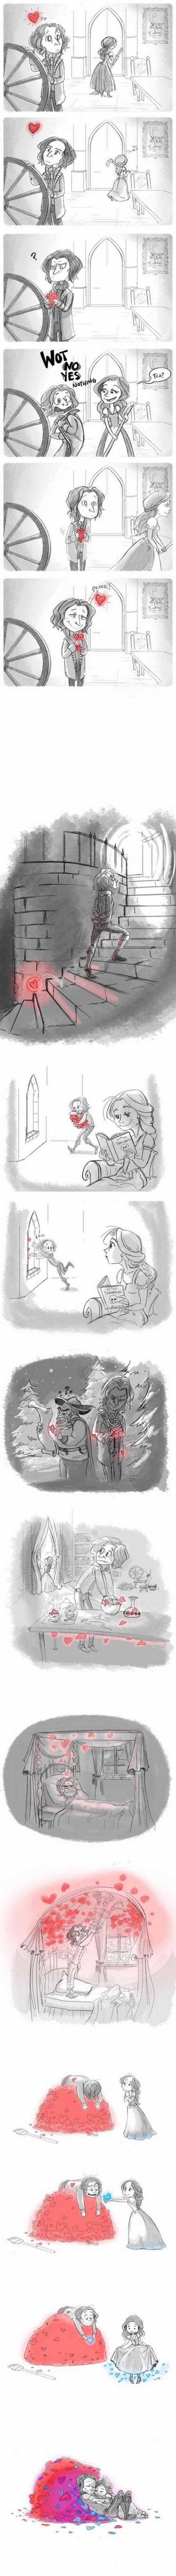 Once Upon A Time - Oh. My. God. This is one of the most adorable things ever!!!